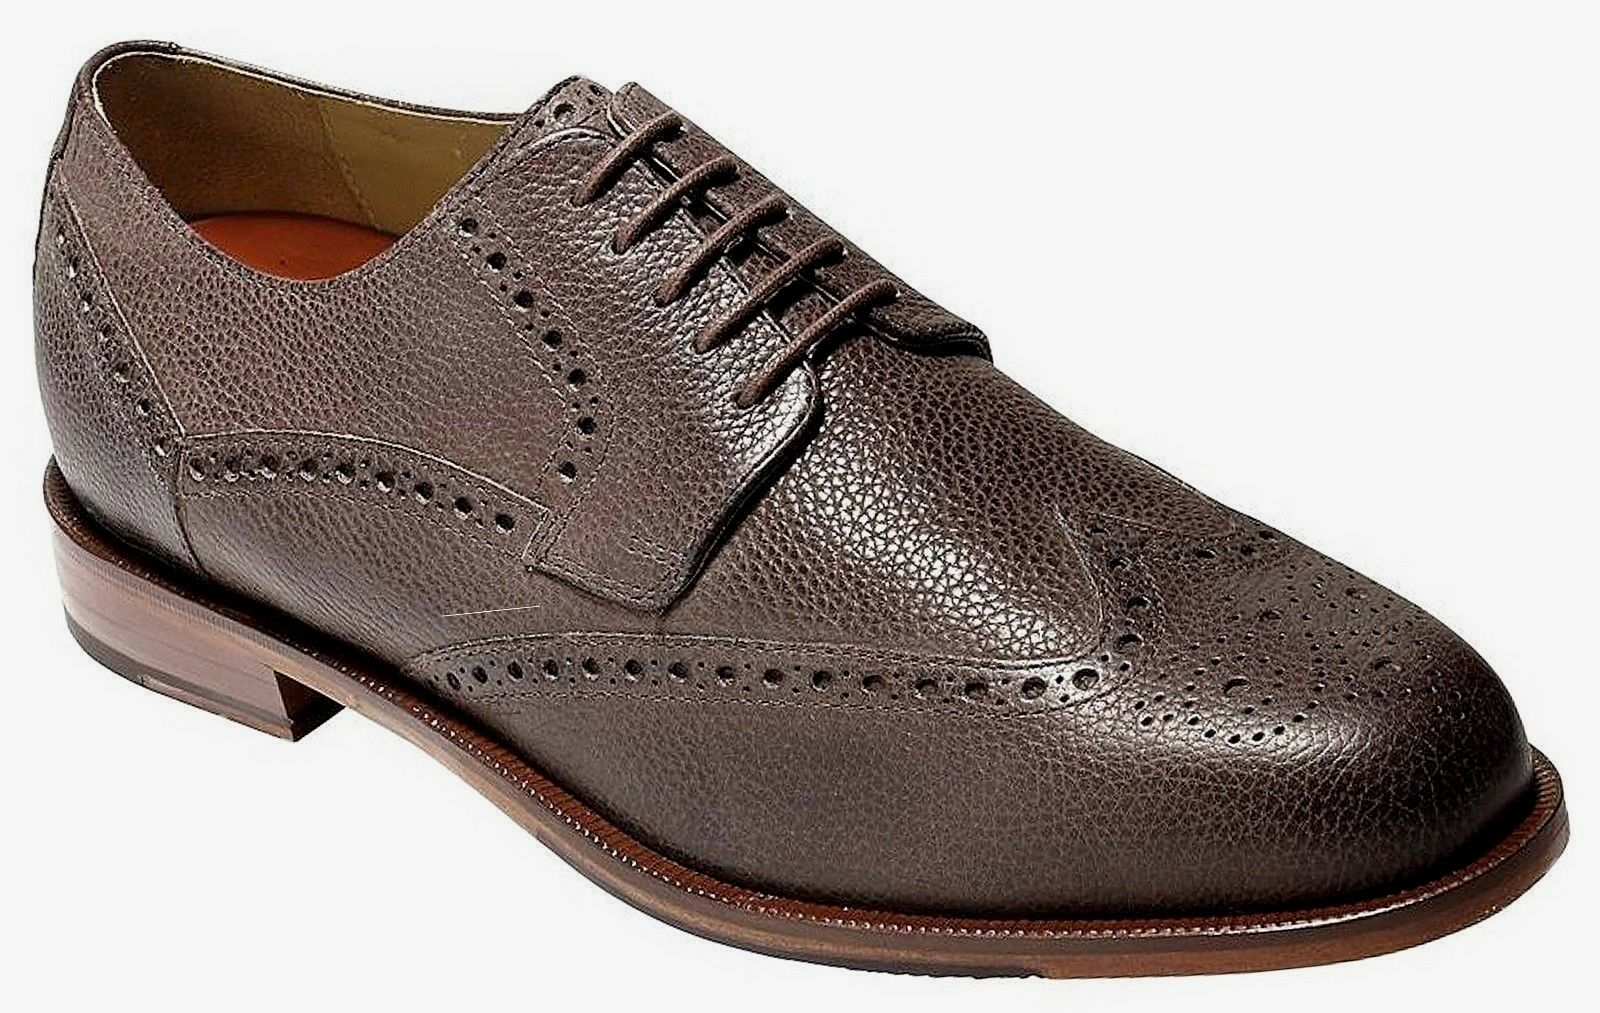 Cole Haan Uomo Carter Grand Wing Oxford Dress Scarpe Chestnut 8 NEW IN BOX